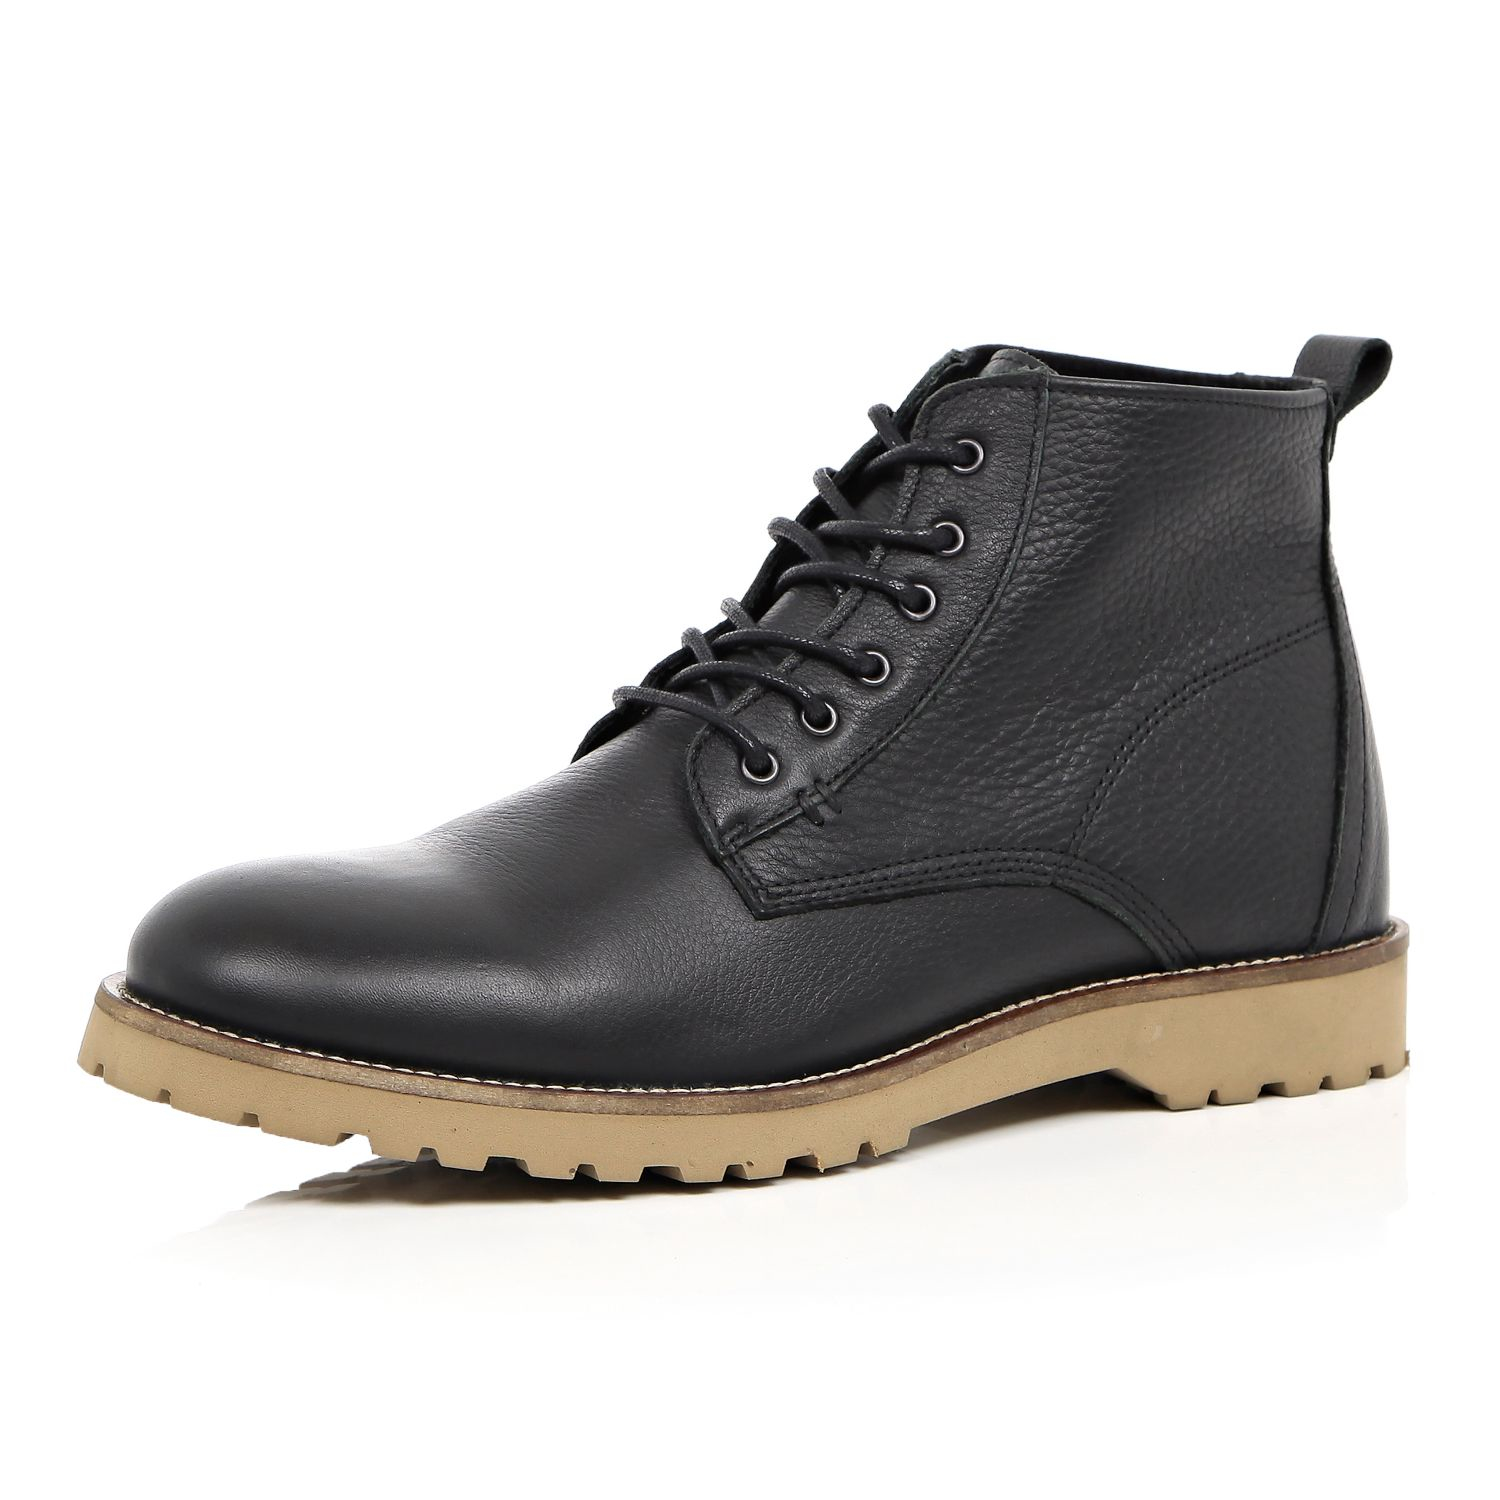 River Island Black Leather Rustic Boots In Black